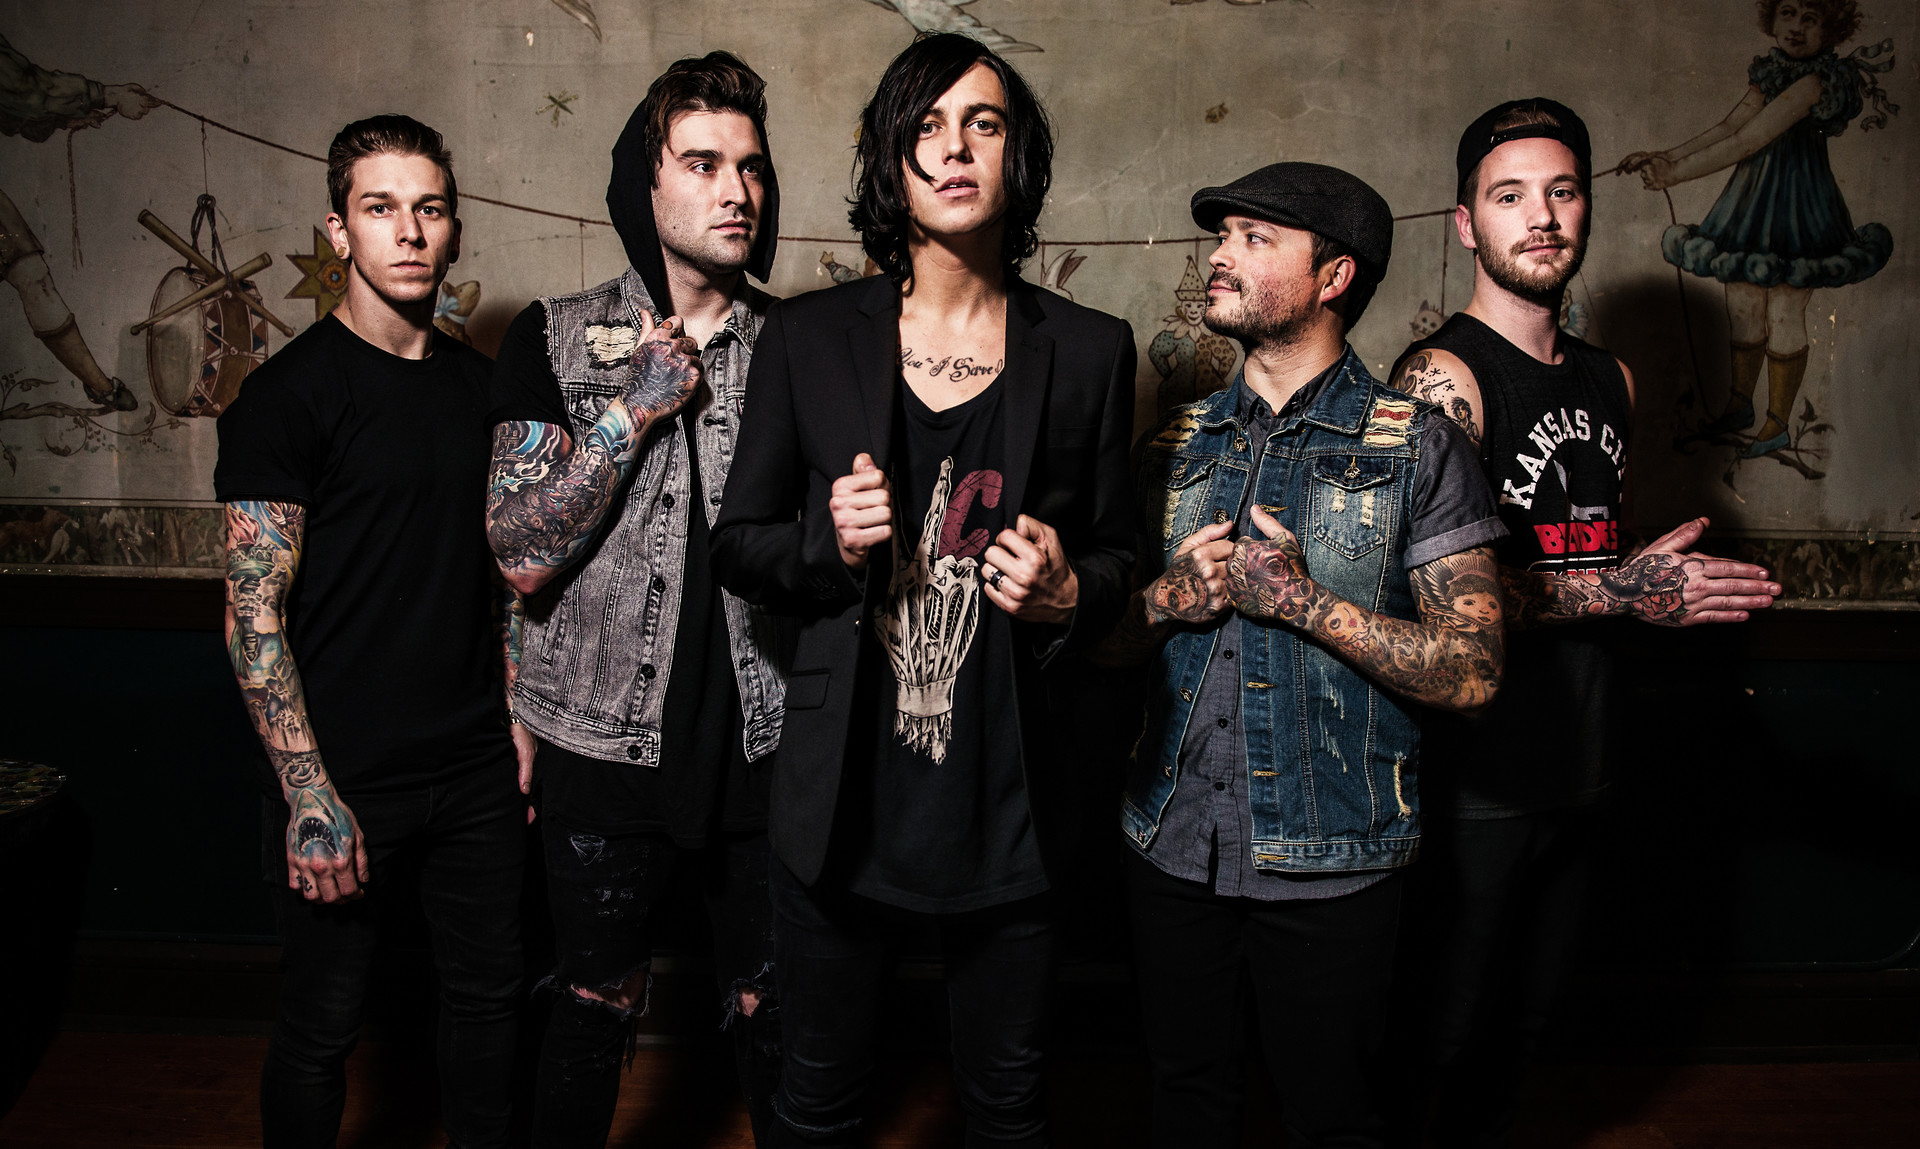 The New Sleeping With Sirens Single Is Now The Official Song For The U.S. Olympic Team - News - Rock Sound Magazine